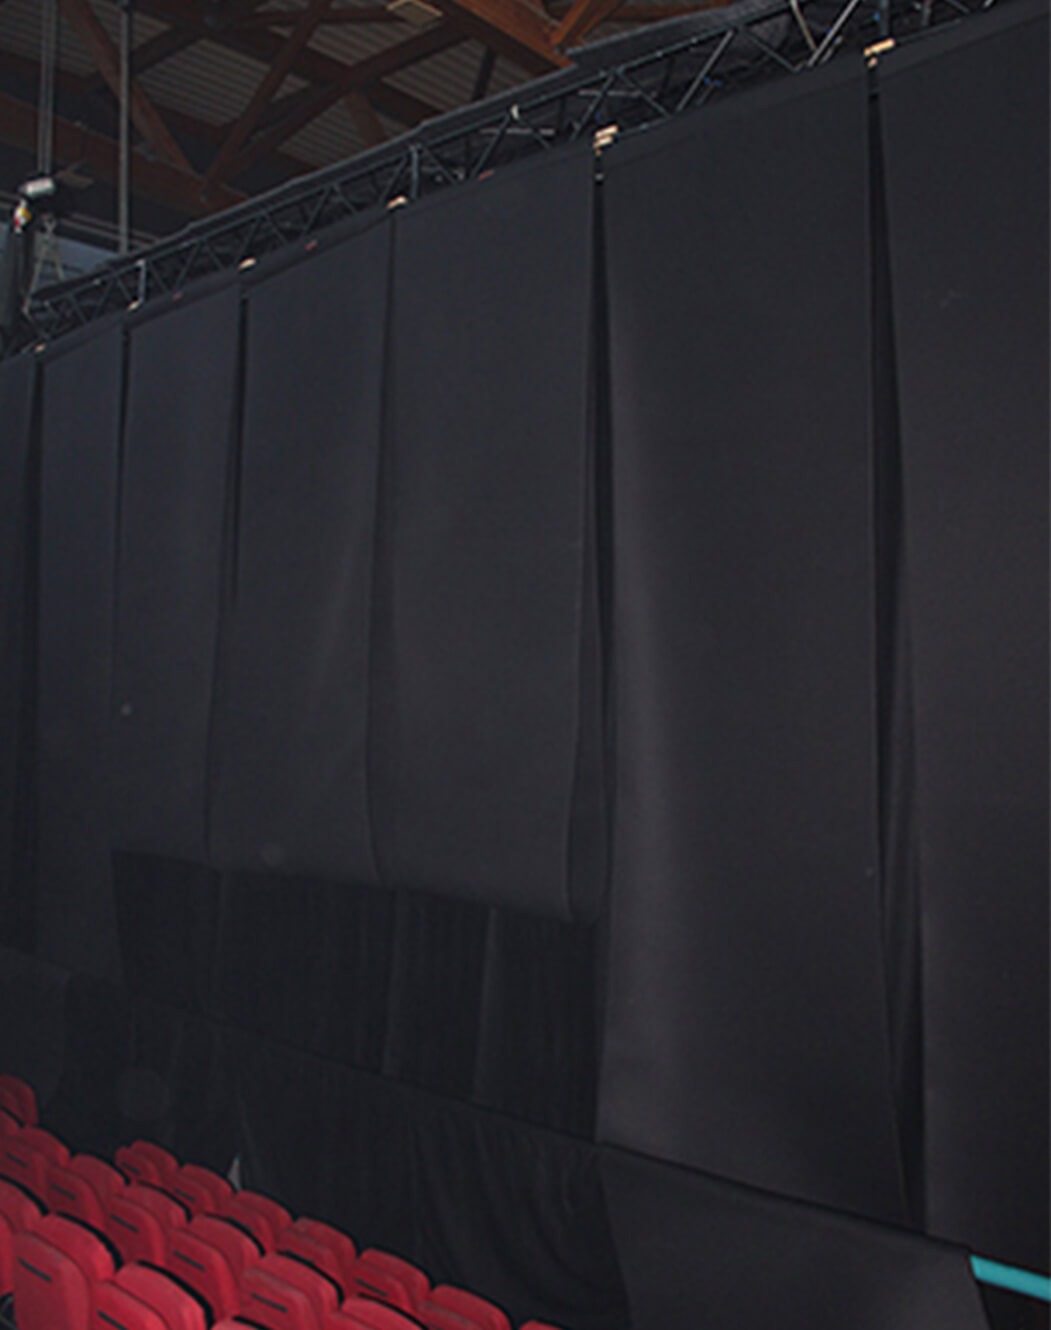 basmel acoustic curtains installed on lighting rig